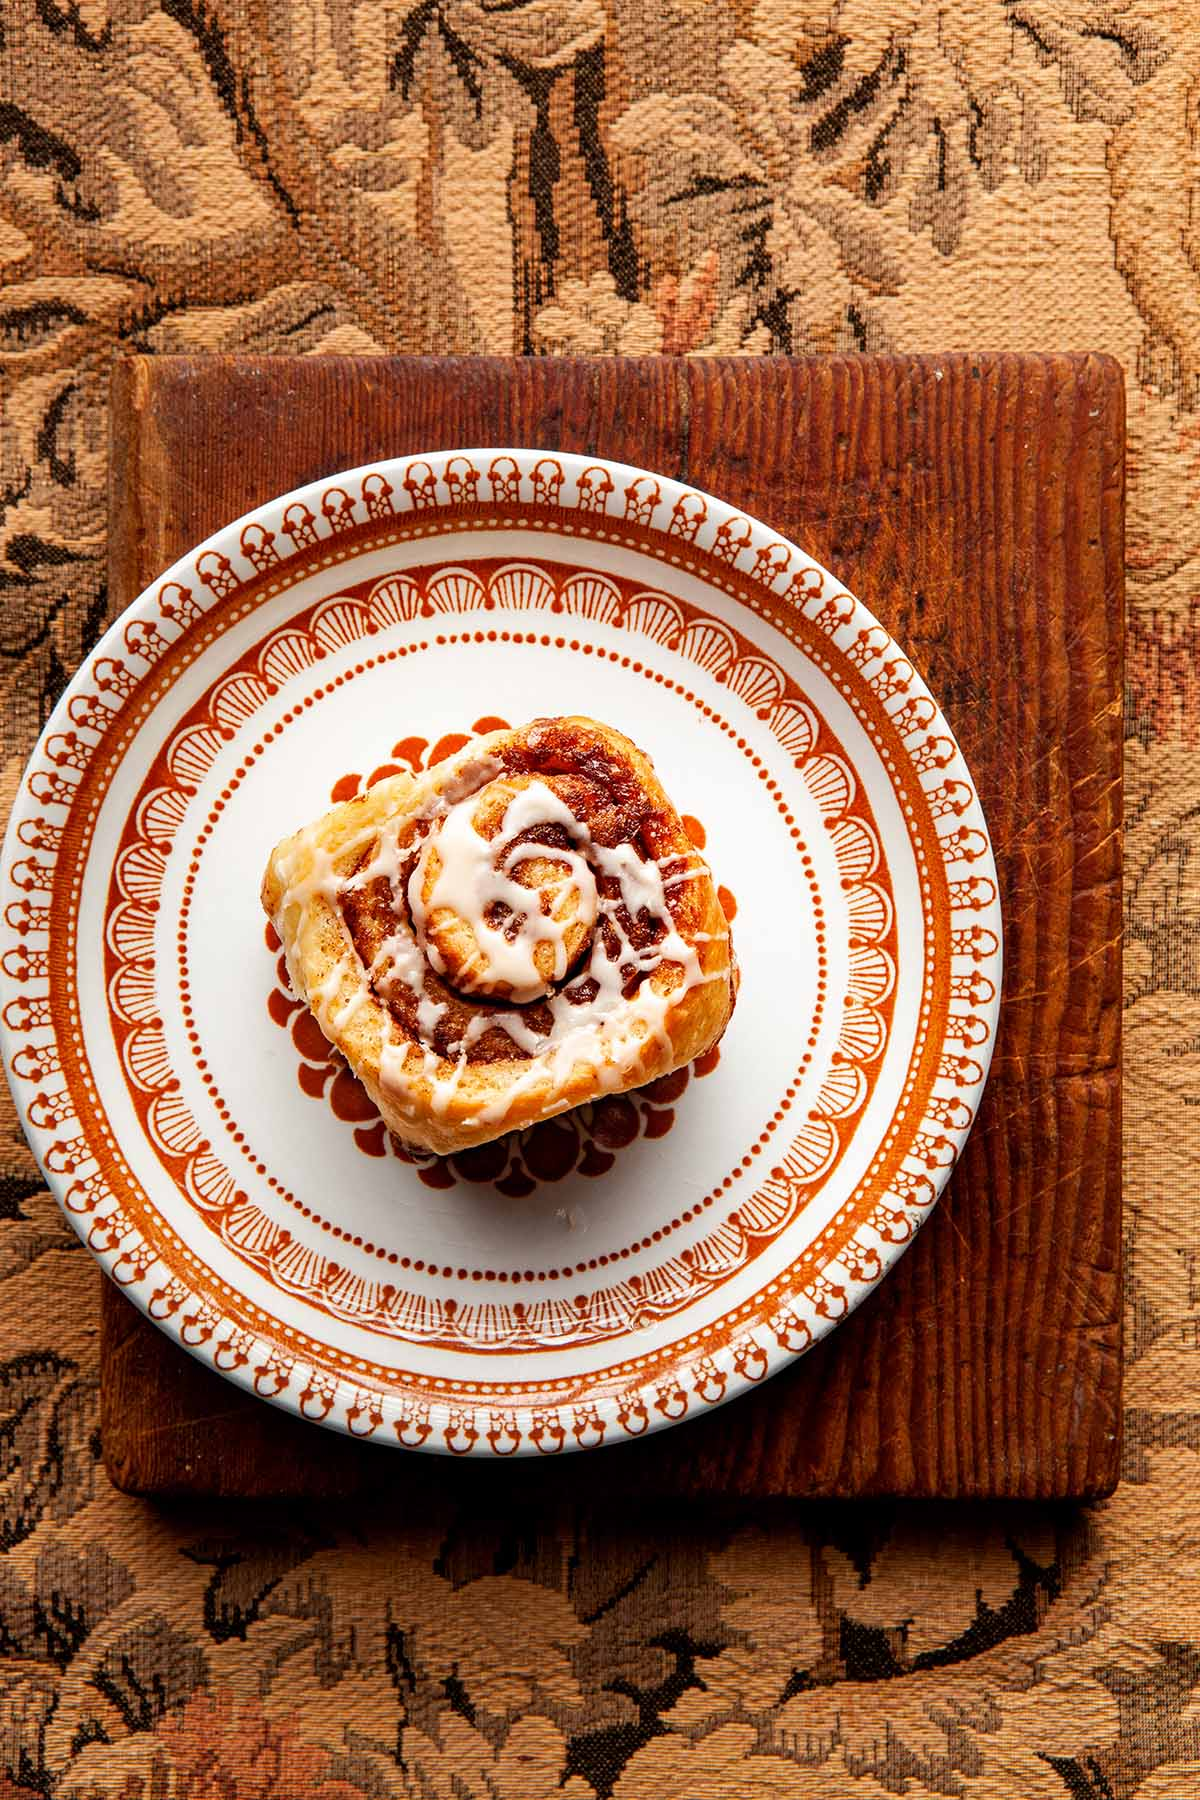 One cinnamon bun sitting on a retro orange and white plate, on top of a rustic cutting board, on beige tapestry fabric.